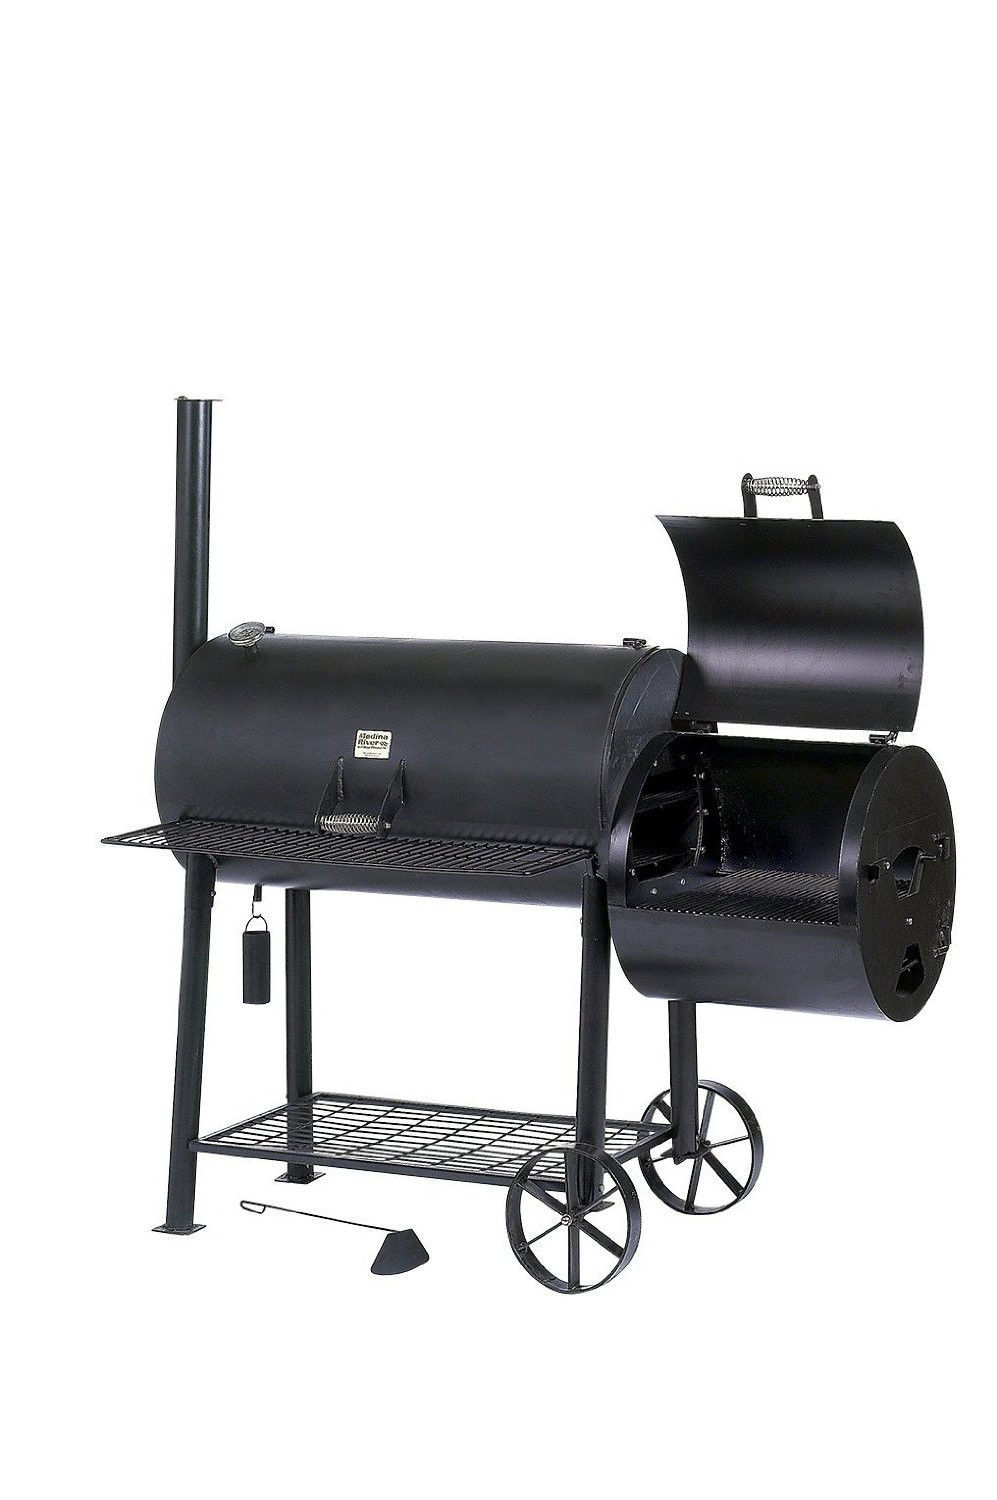 new jumbo charcoal smoker grill combo w side box patio bbq cooking stove garden barbecues. Black Bedroom Furniture Sets. Home Design Ideas